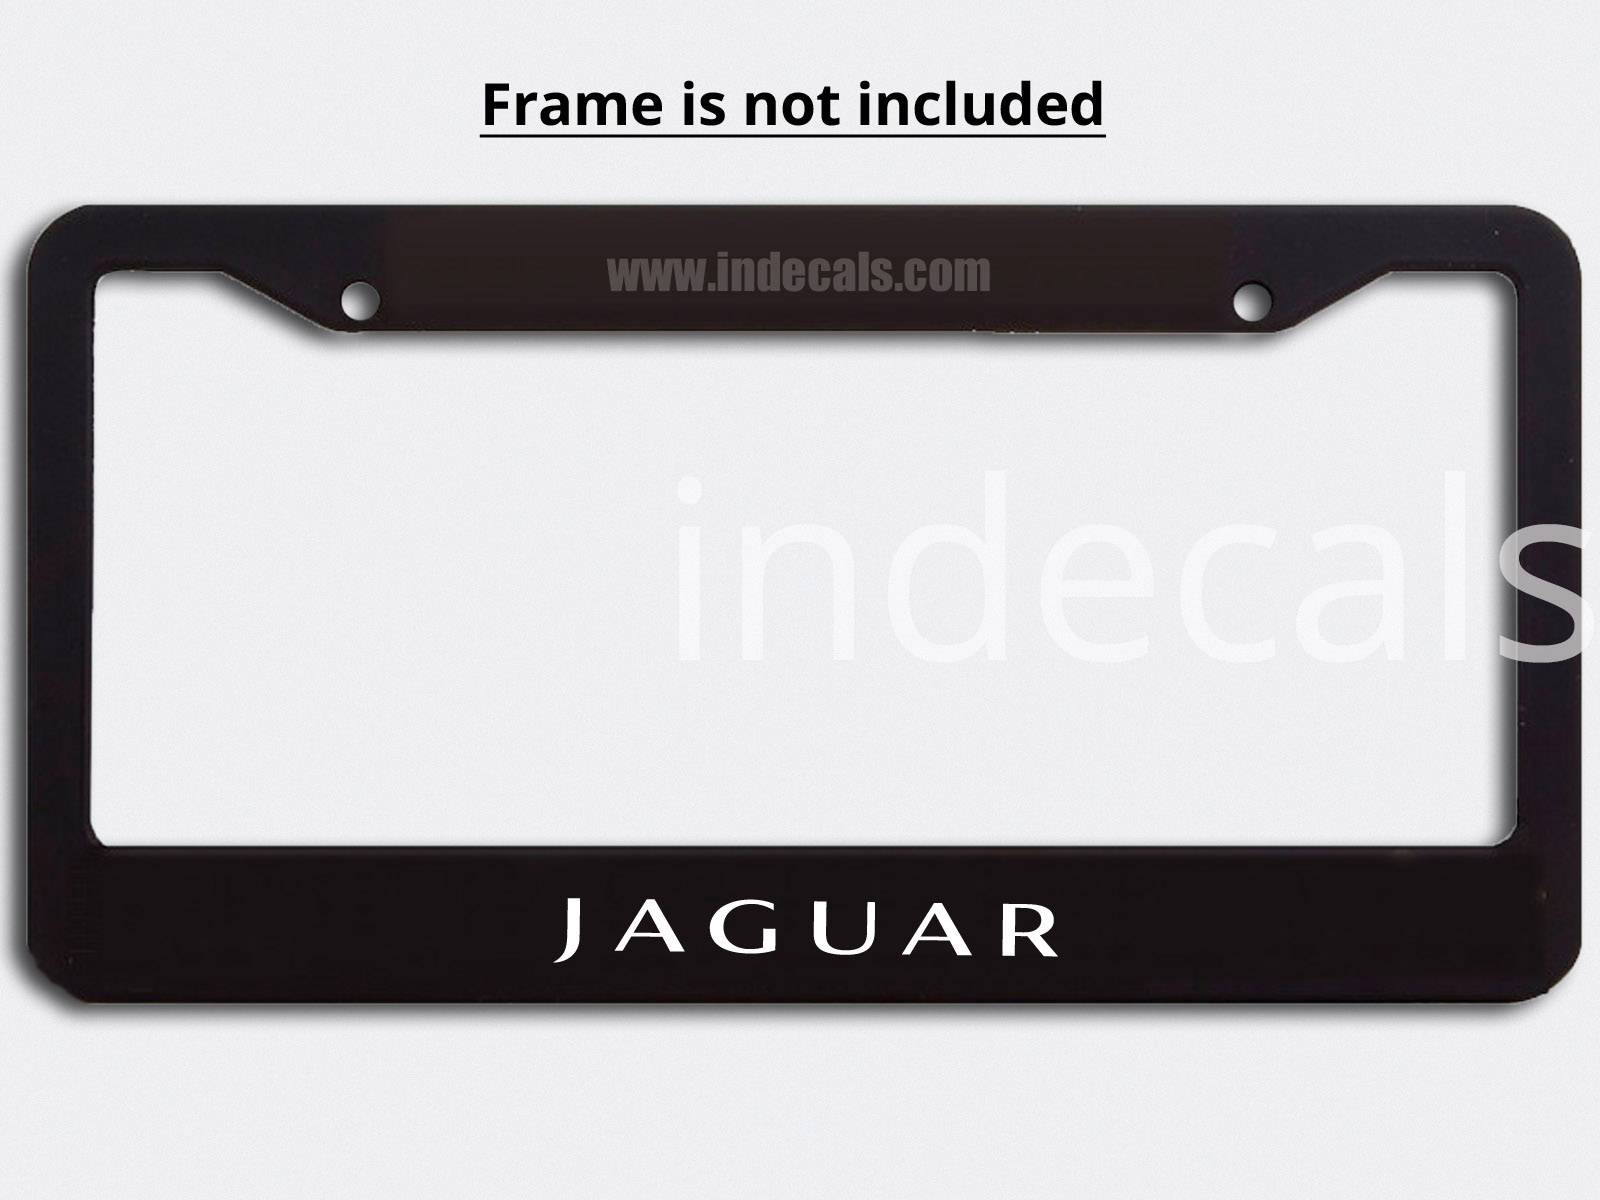 3 x Jaguar Stickers for Plate Frame - White